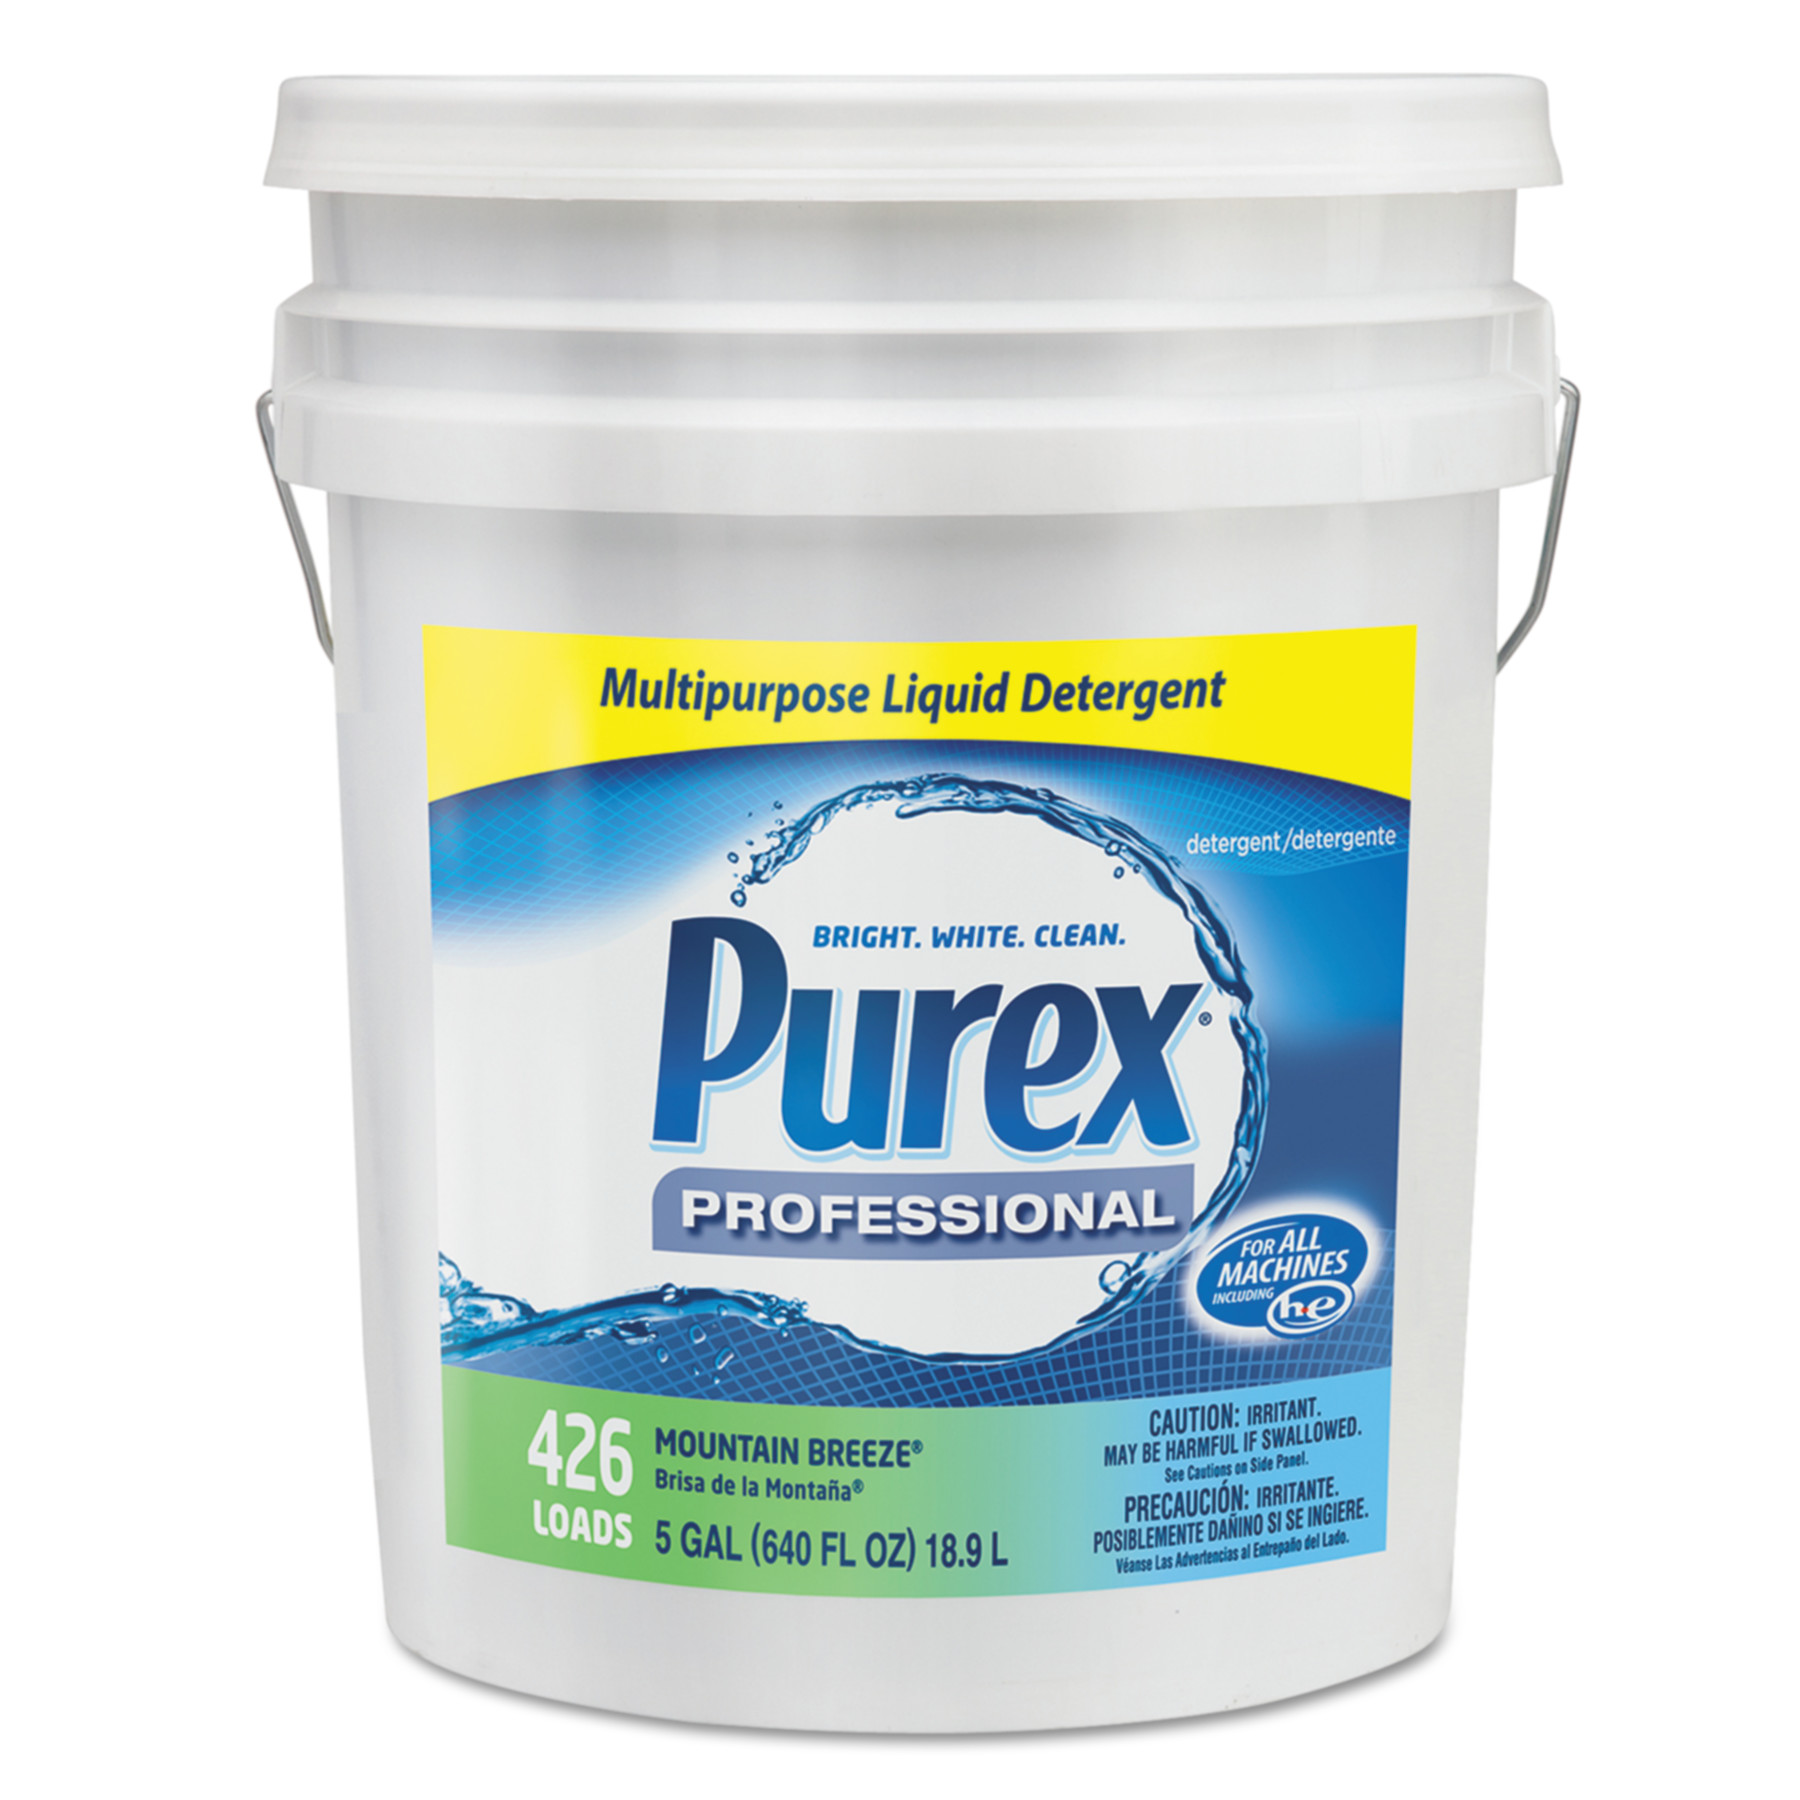 Purex Concentrate Liquid Laundry Detergent, Mountain Breeze, 5 gal. Pail